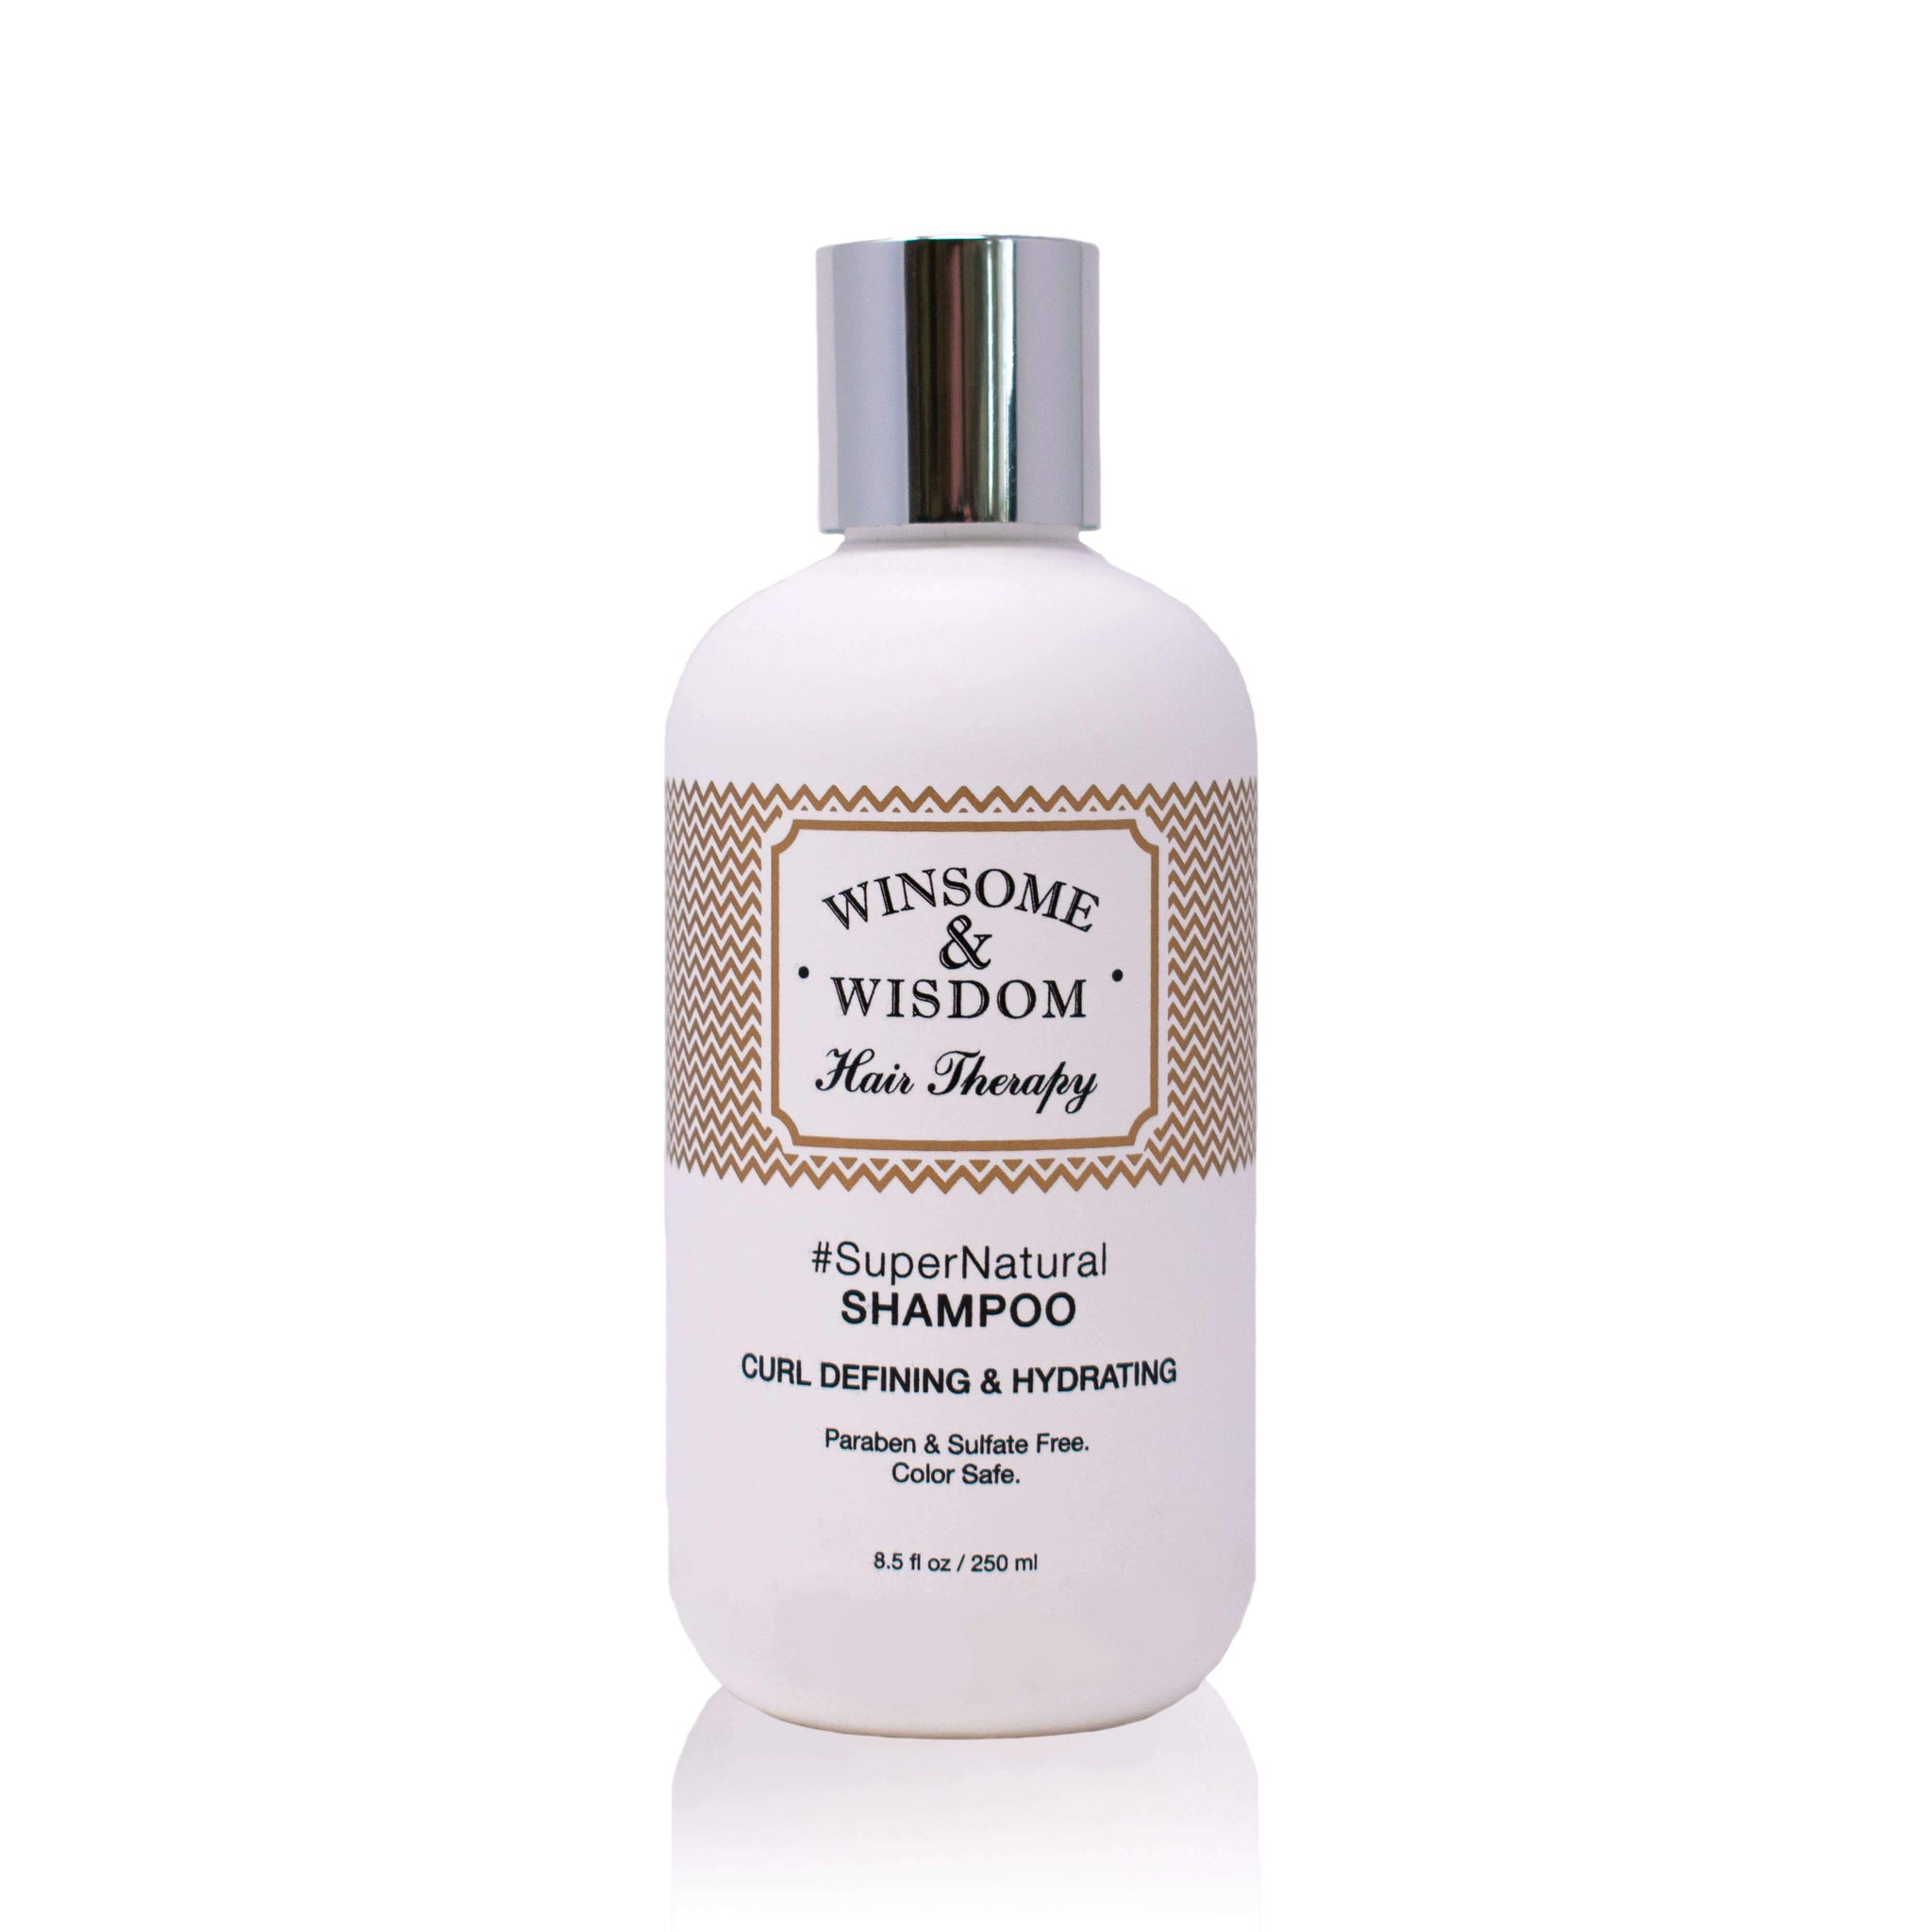 #SuperNatural - 8 oz - Moisturizing Shampoo For Curly Hair